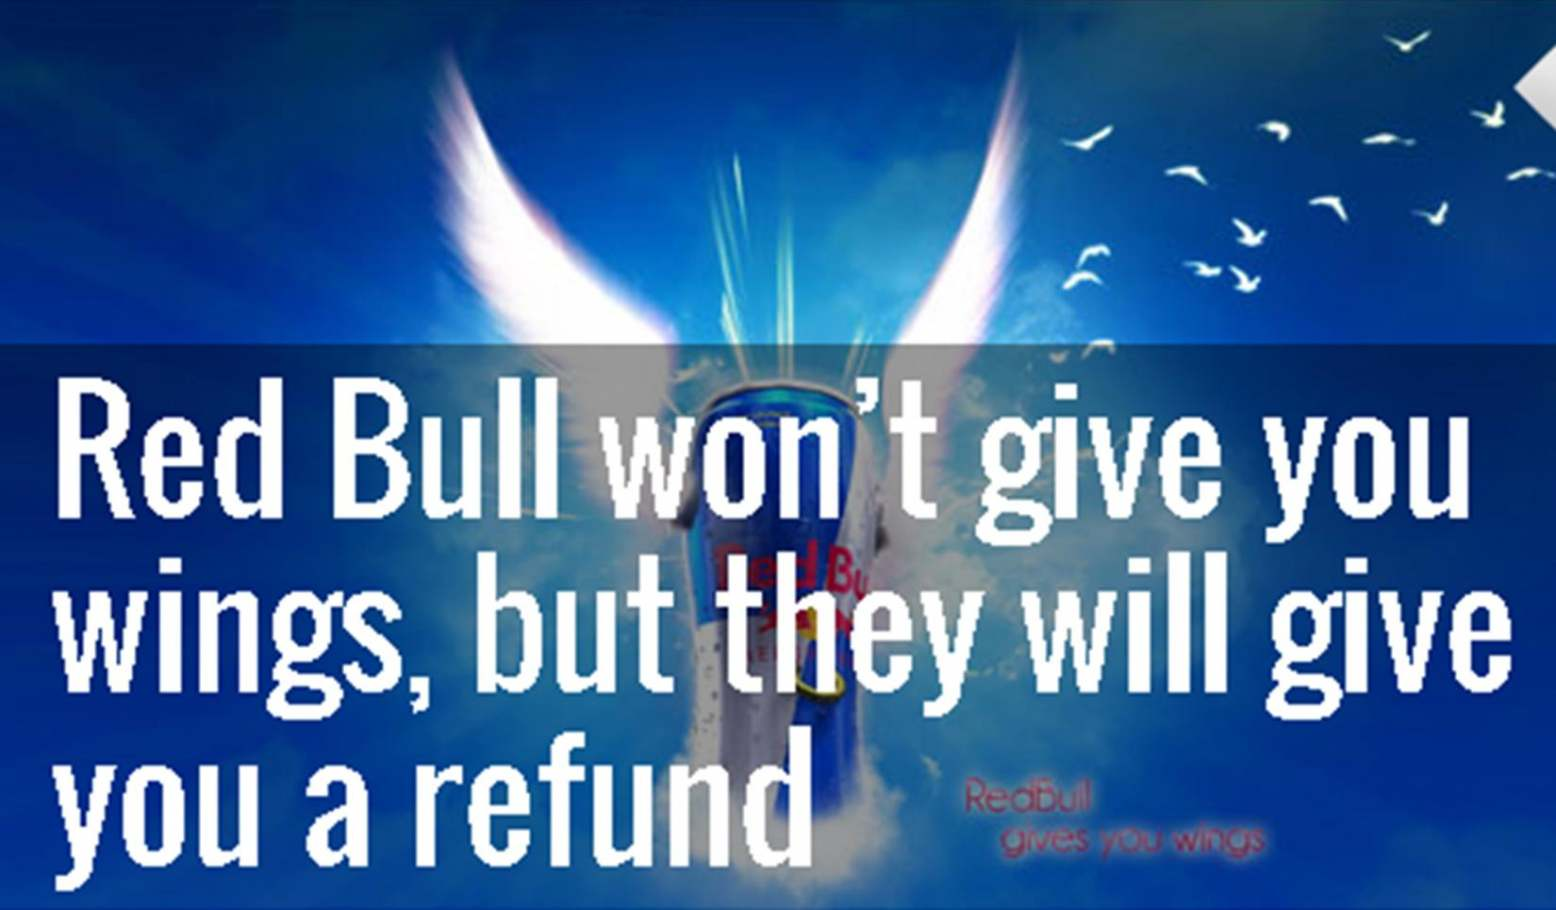 red bull won t give you wings but they will give you a refund